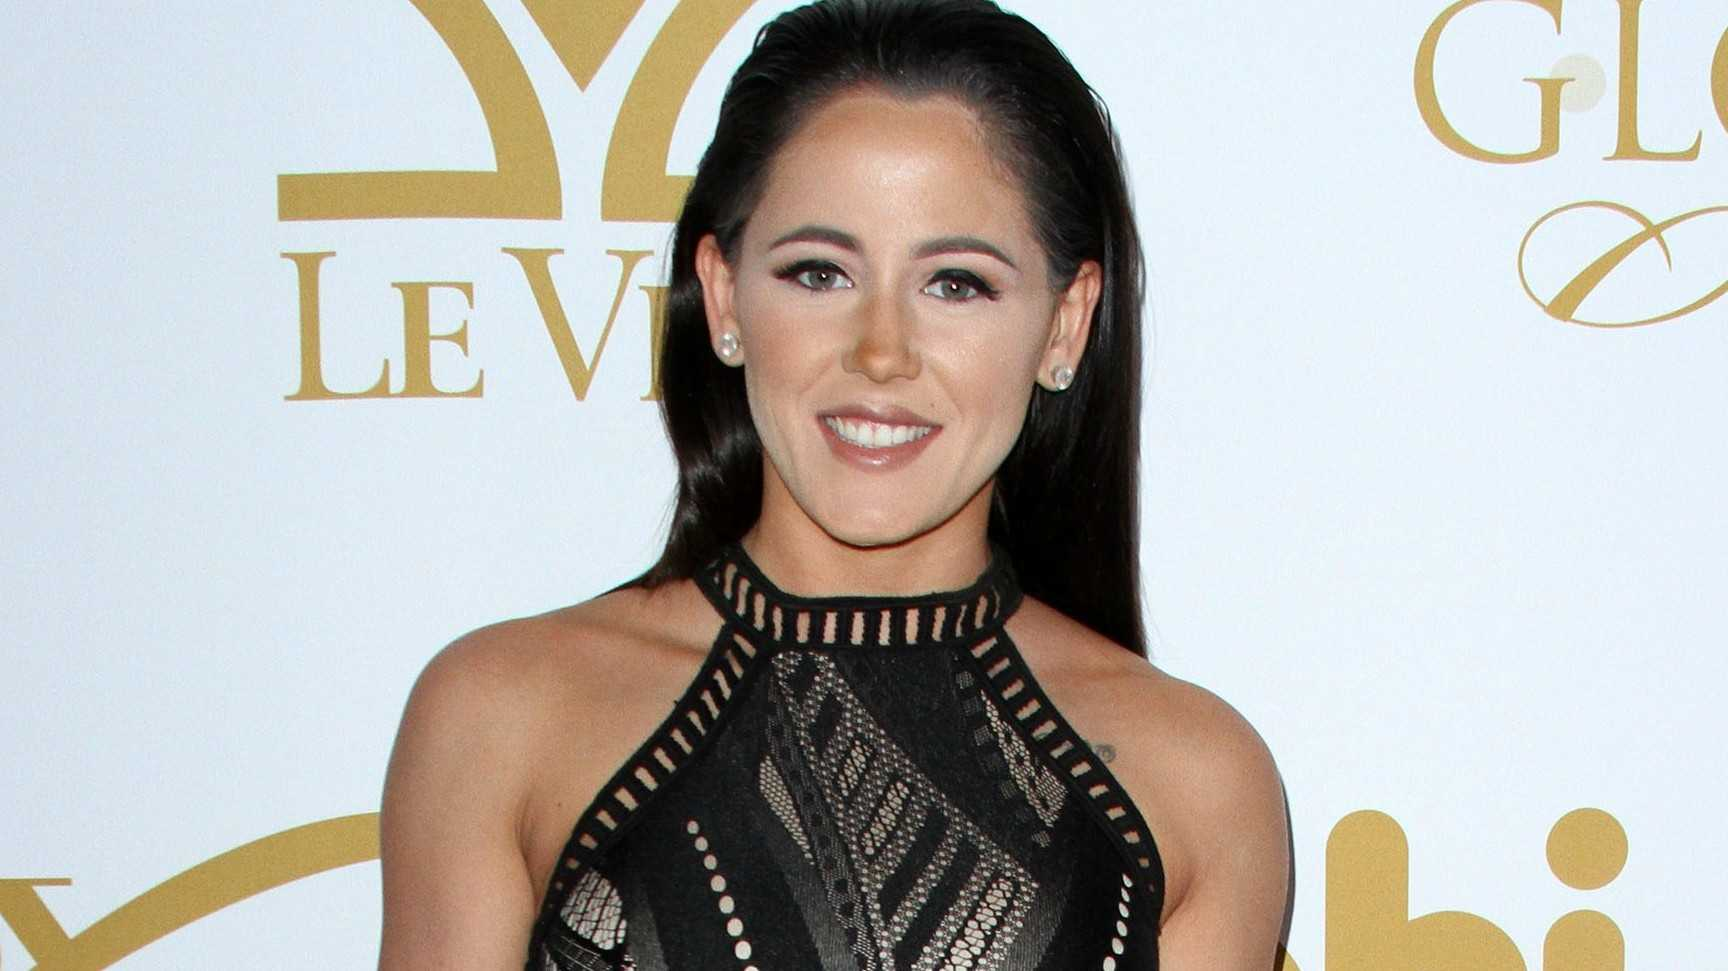 Jenelle Evans On Miscarriage And Motherhood | Jenelle Evans